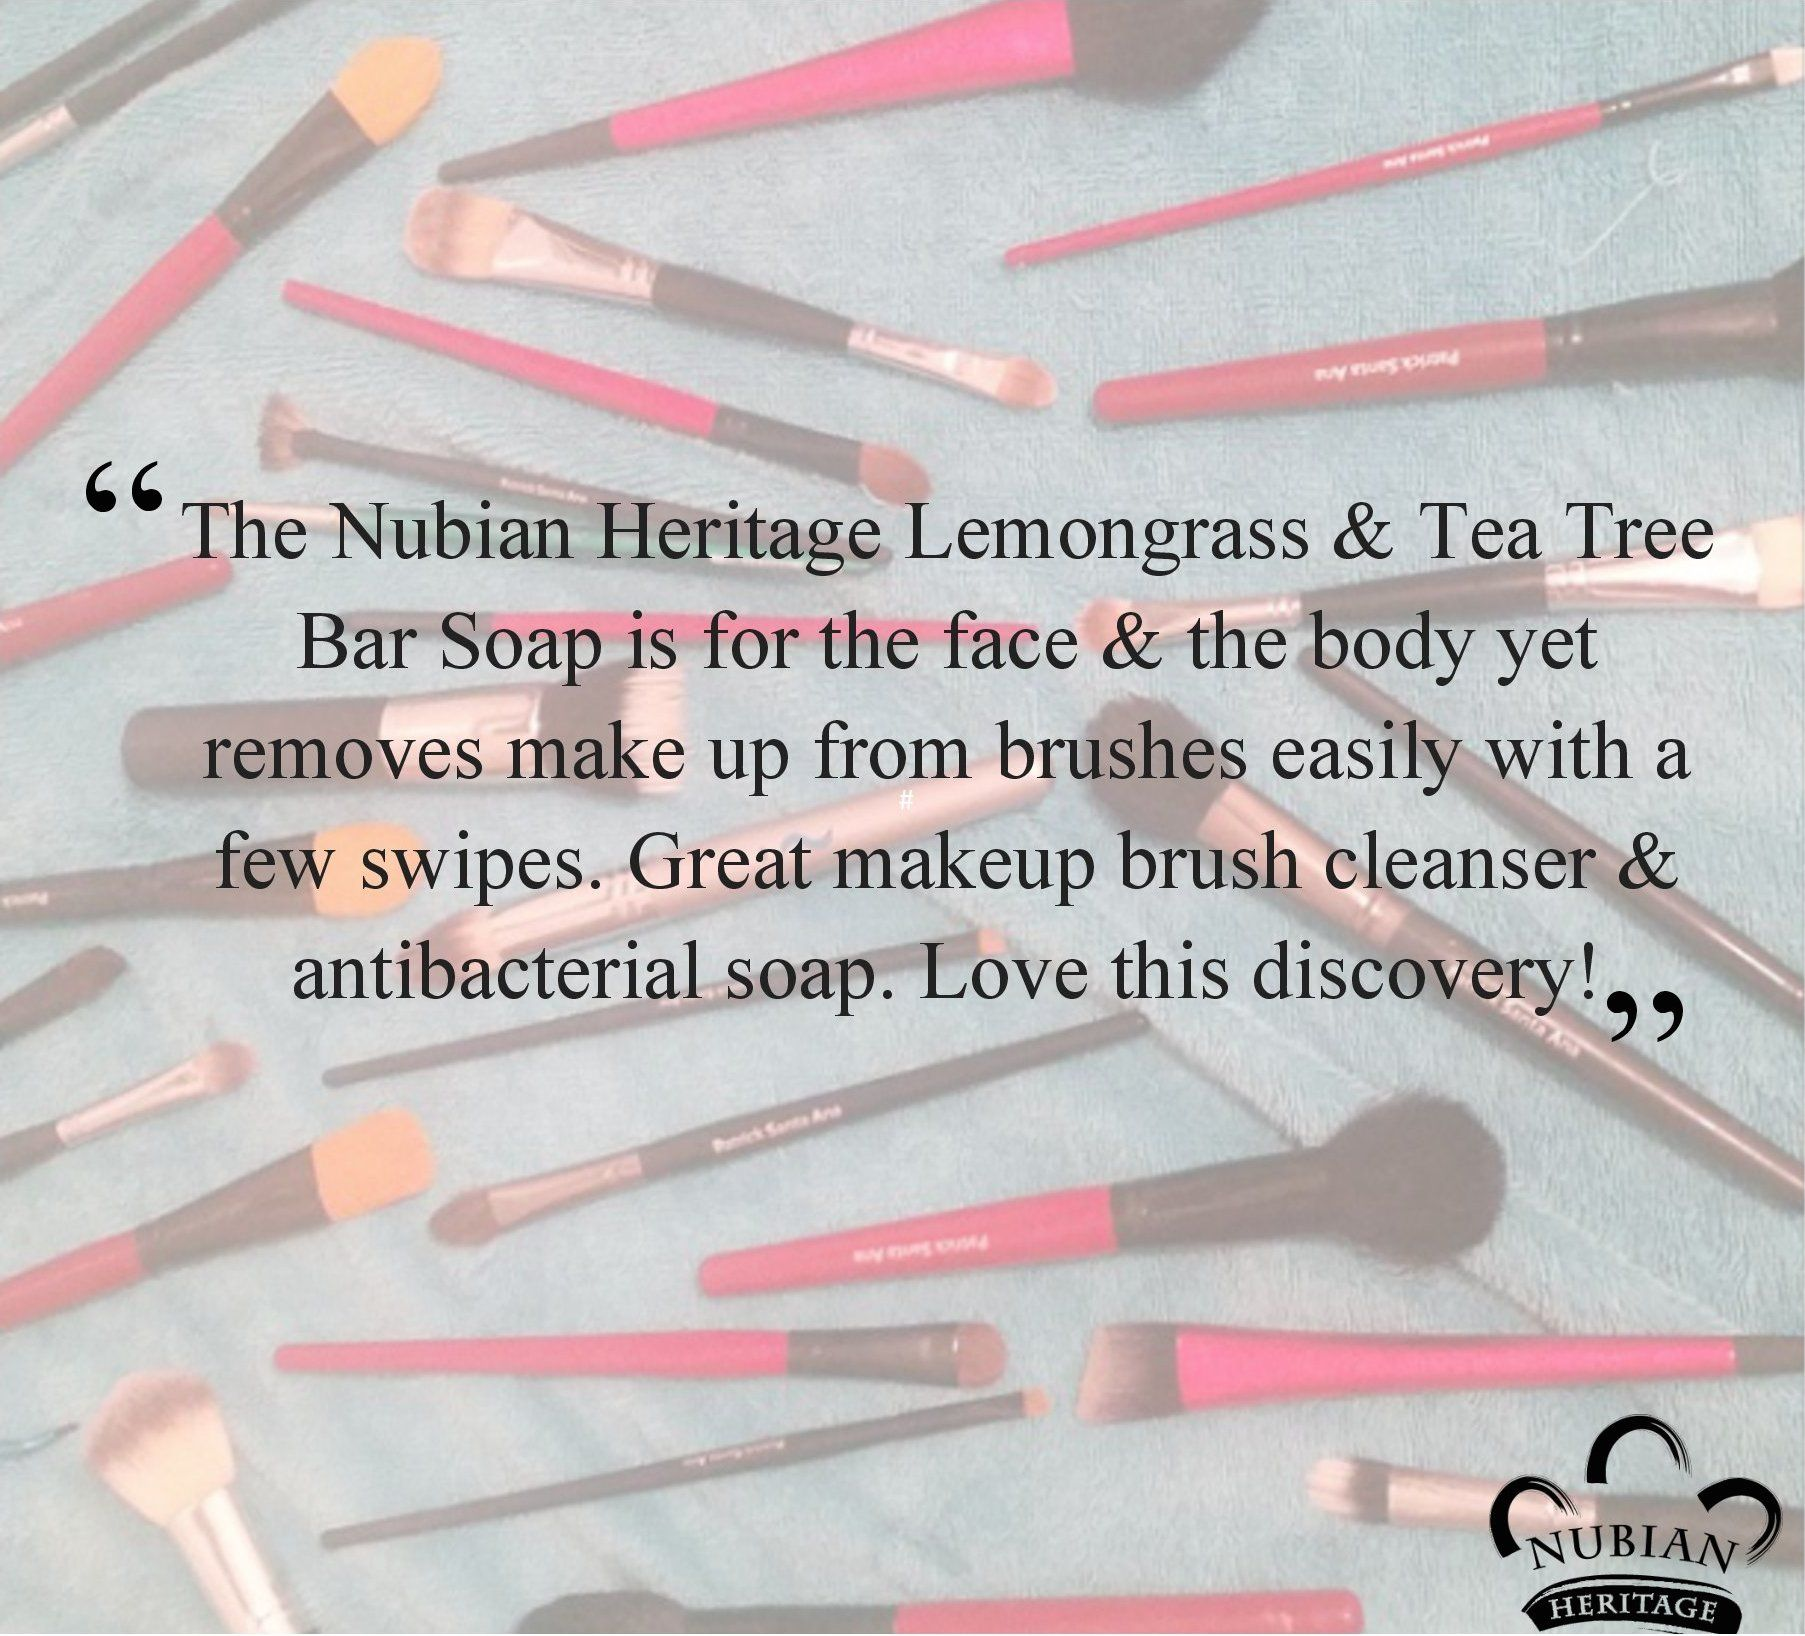 NubianHeritage Lemongrass & Tea Tree soap works great as